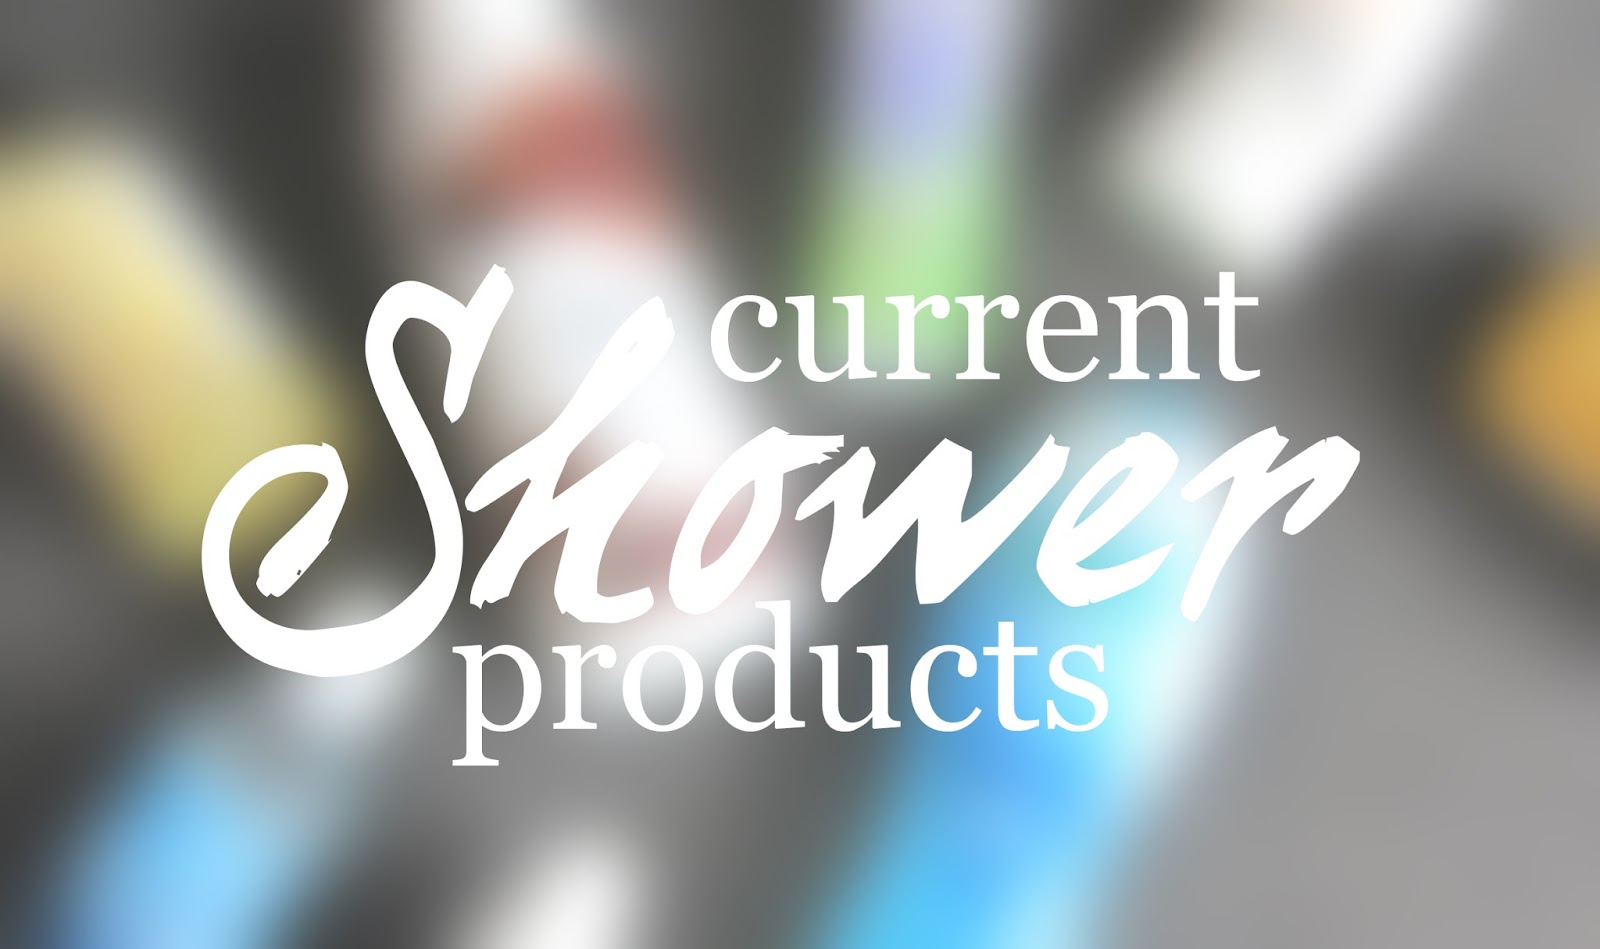 Current Shower Products